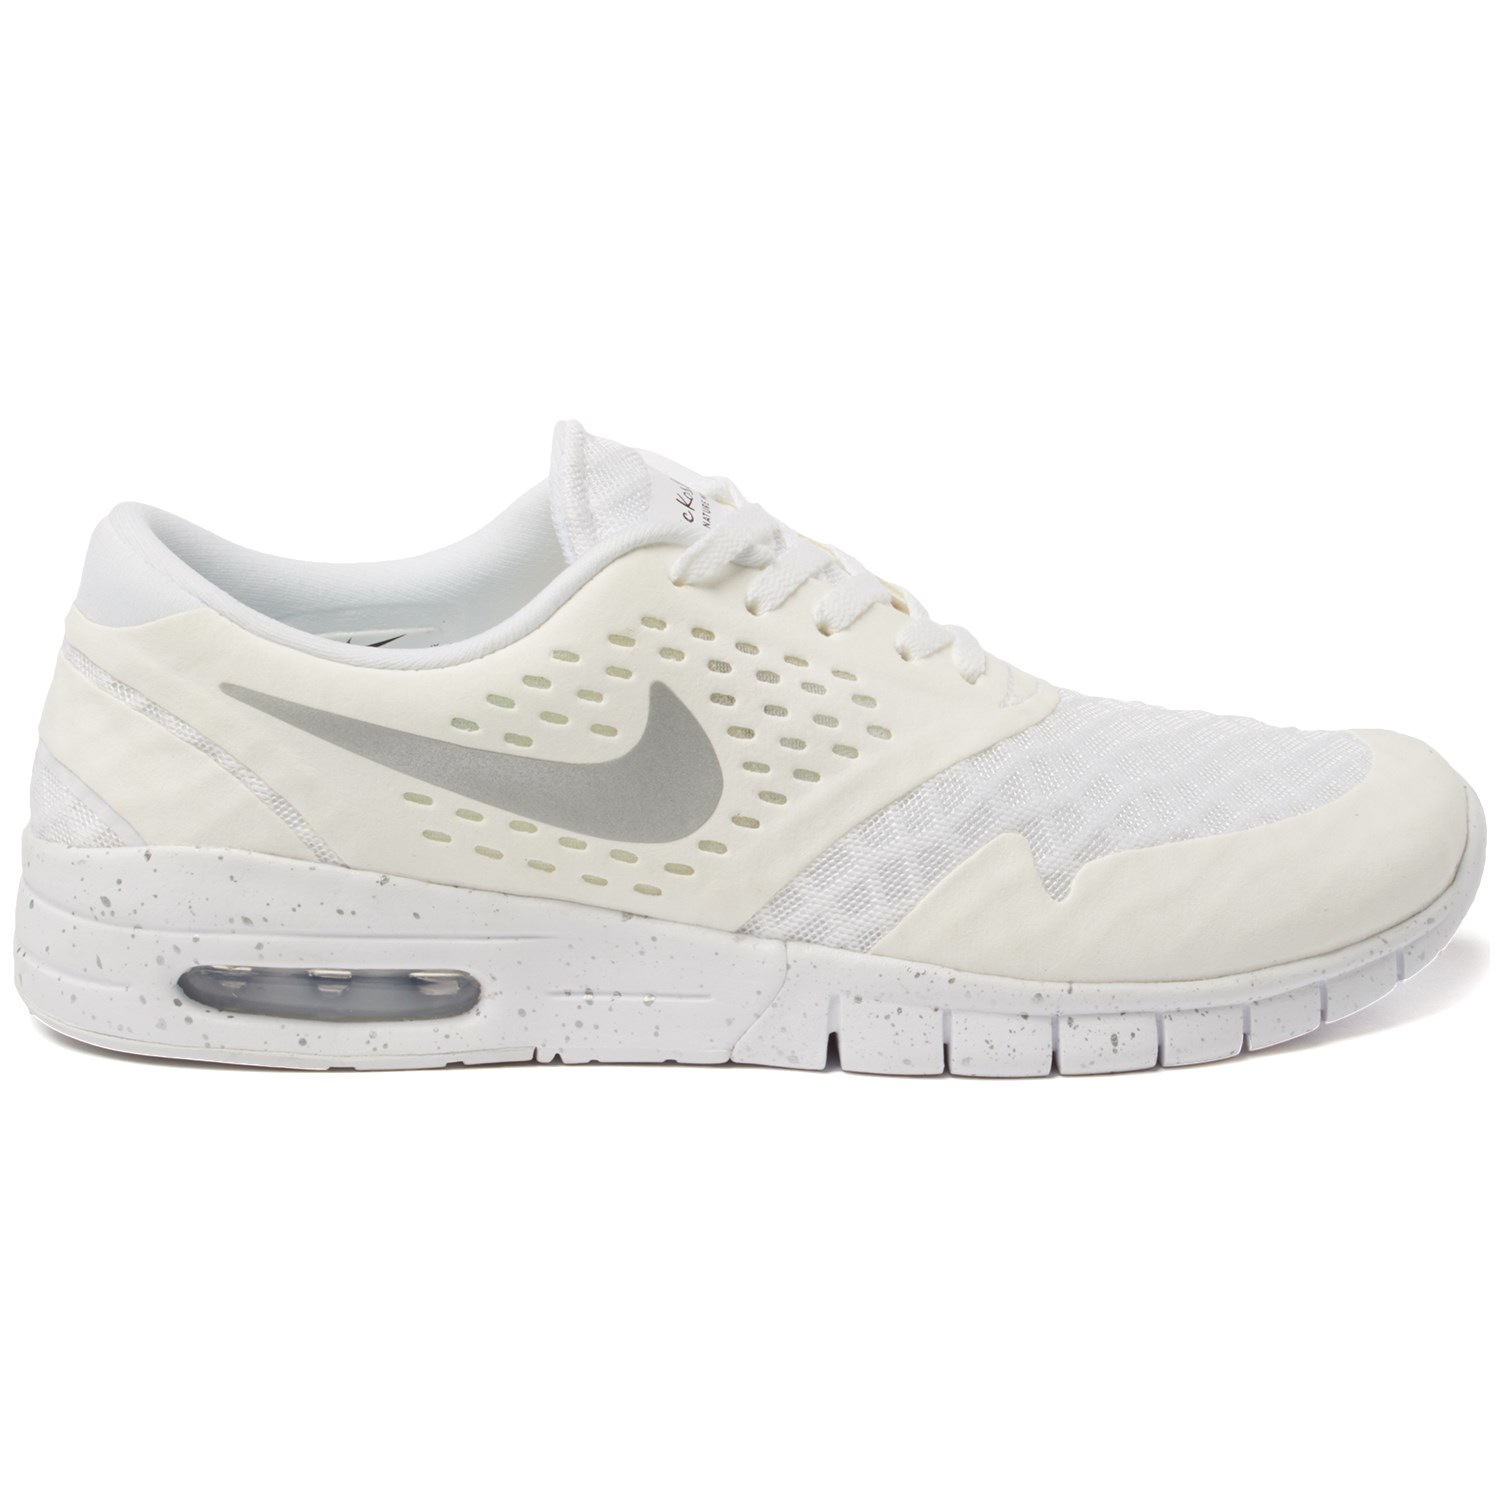 Nike SB Eric Koston 2 Max Shoes Women b8g4d2063Rq 2016 Discount sport sneaker